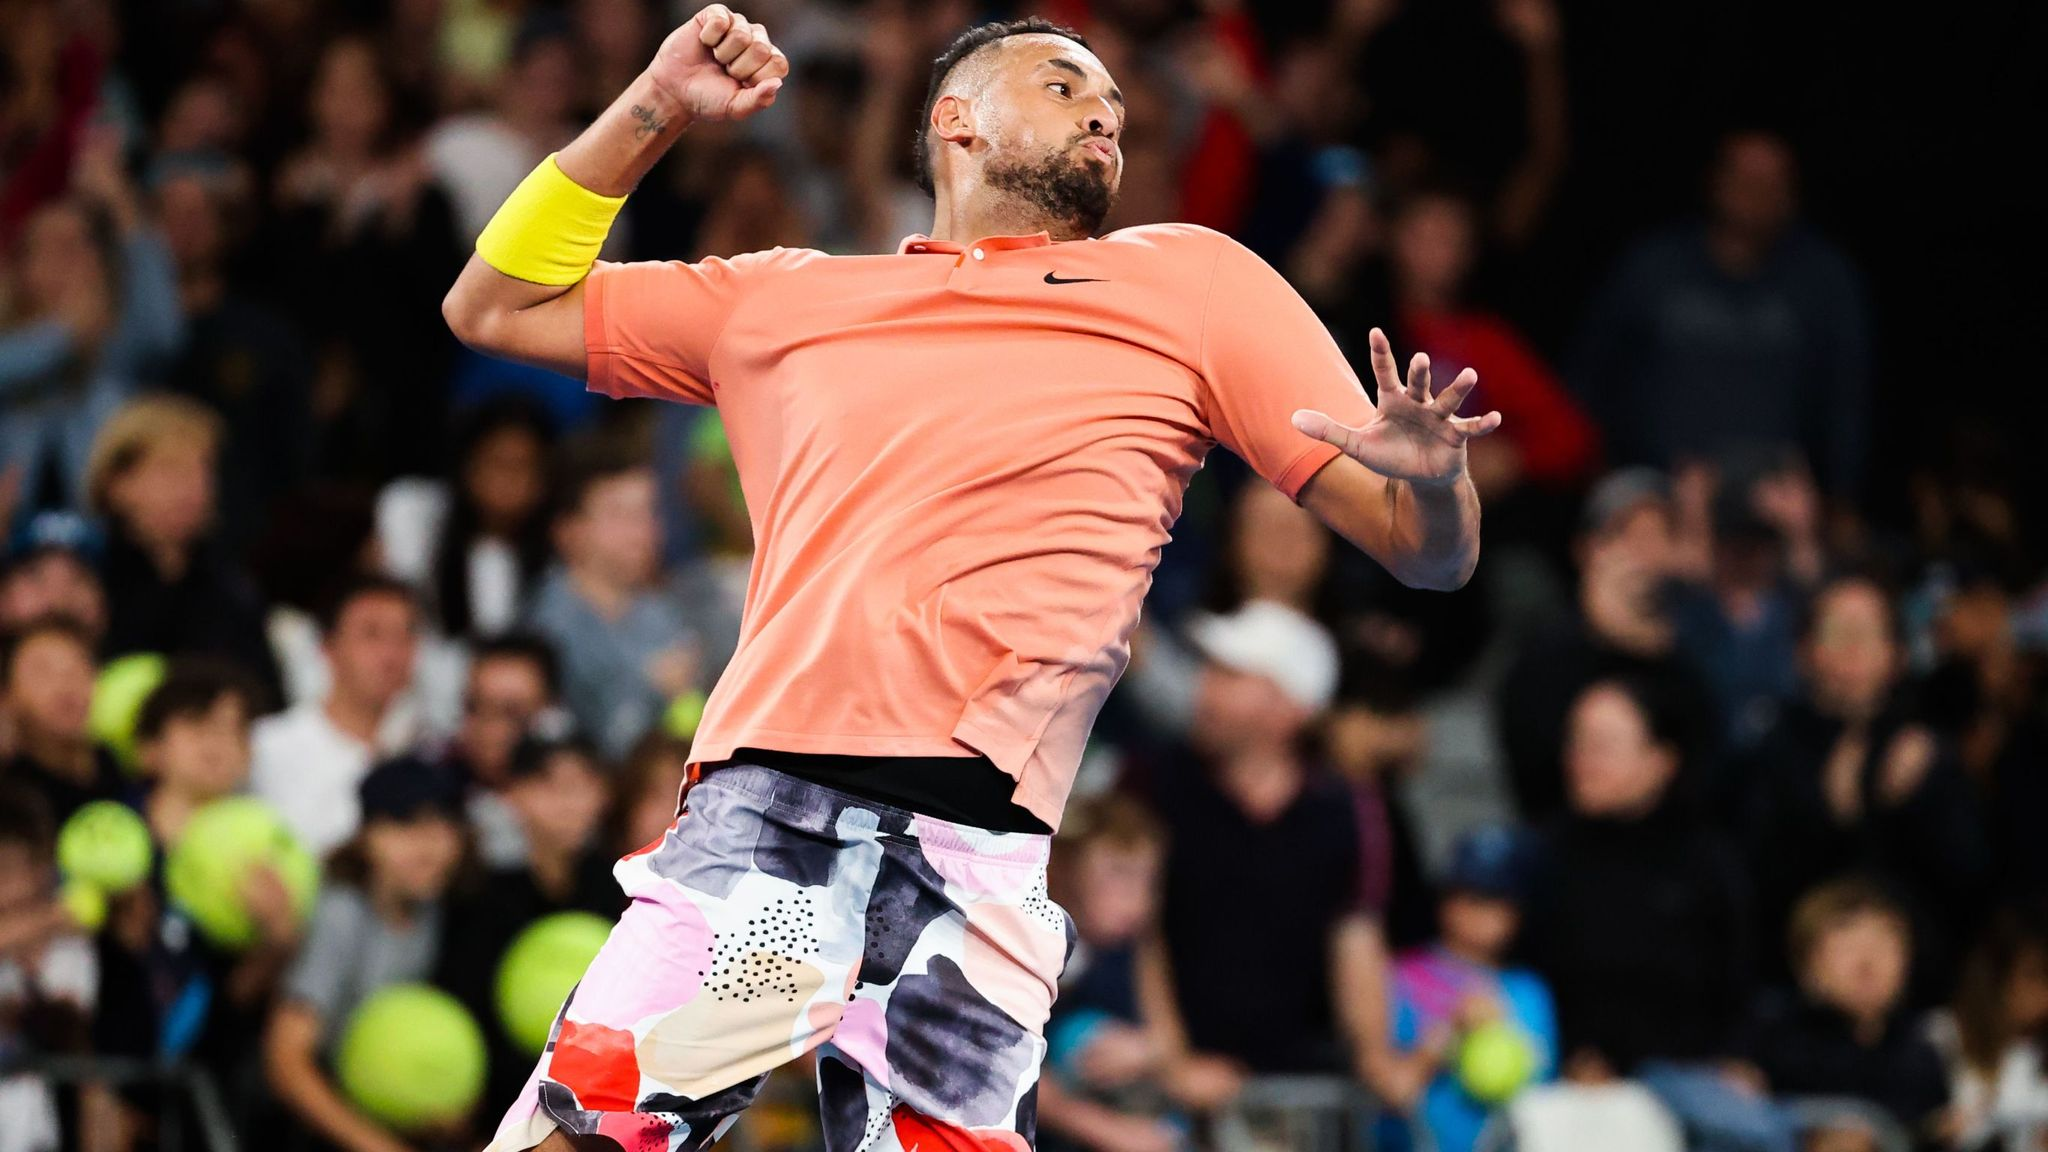 Rafael Nadal stays on Australian Open collision course with Nick Kyrgios